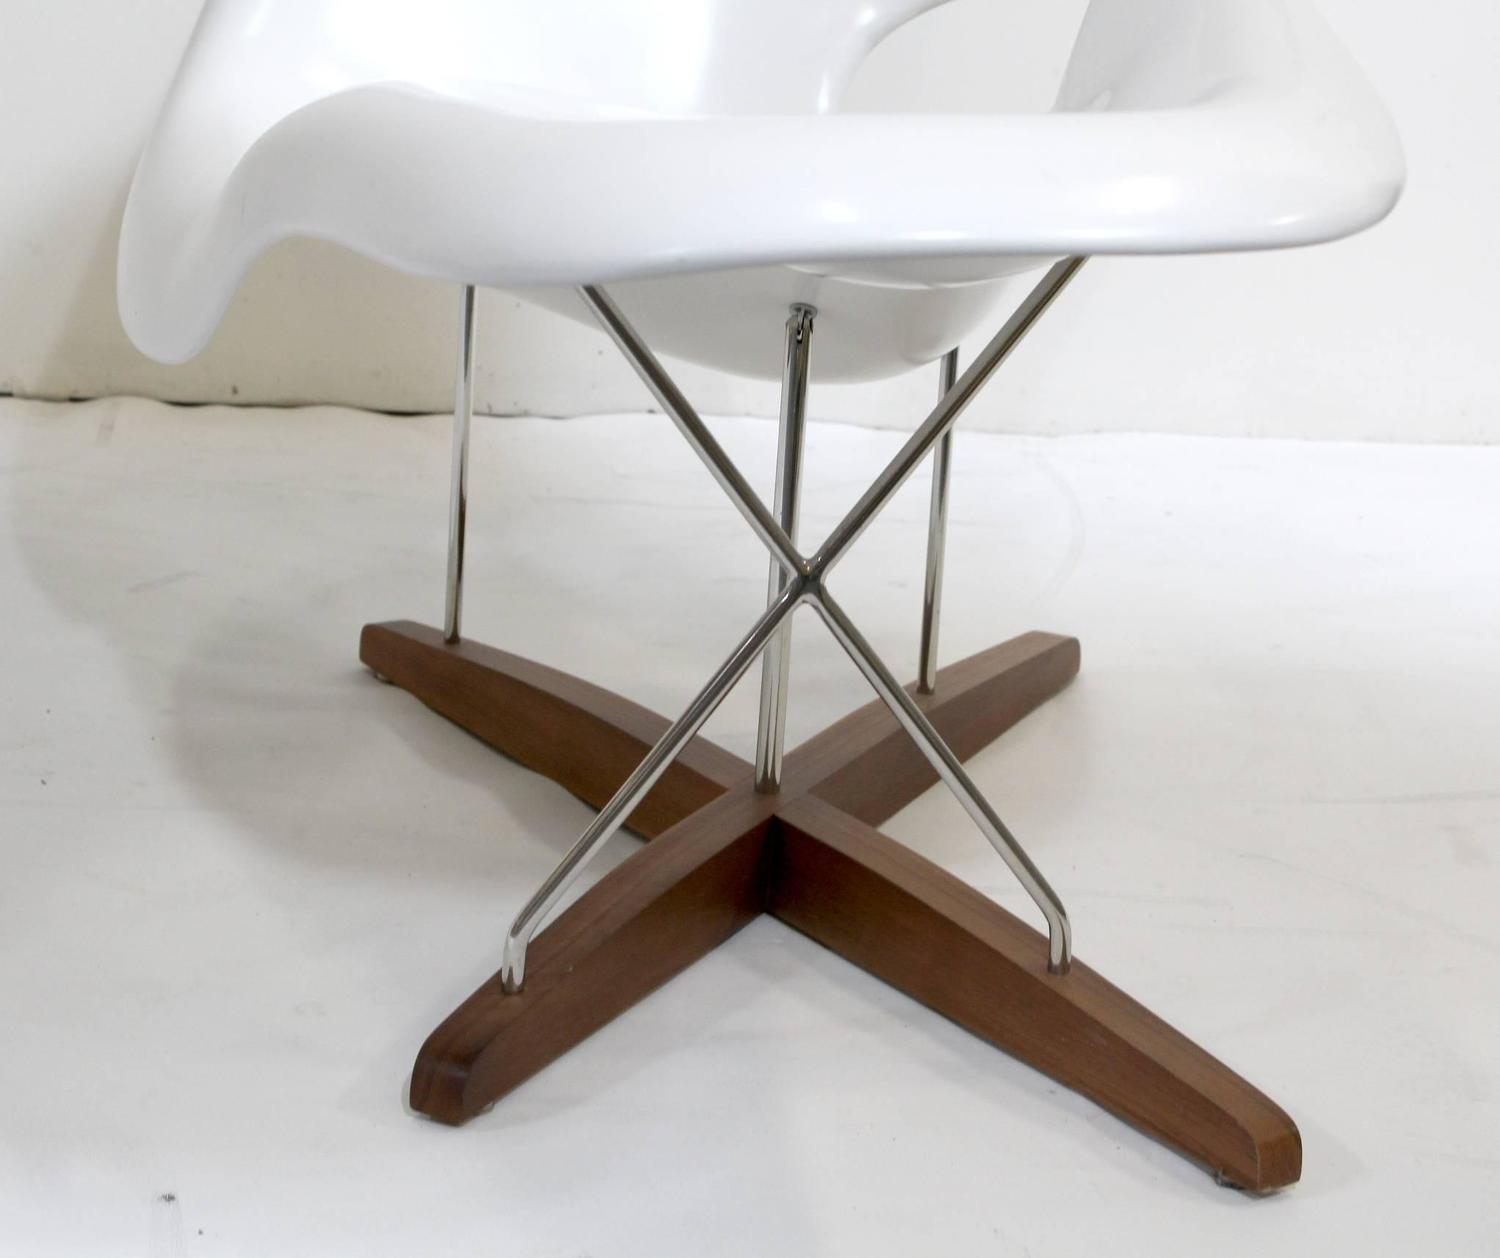 Eames vitra white la chaise chair at 1stdibs for Eames chaise